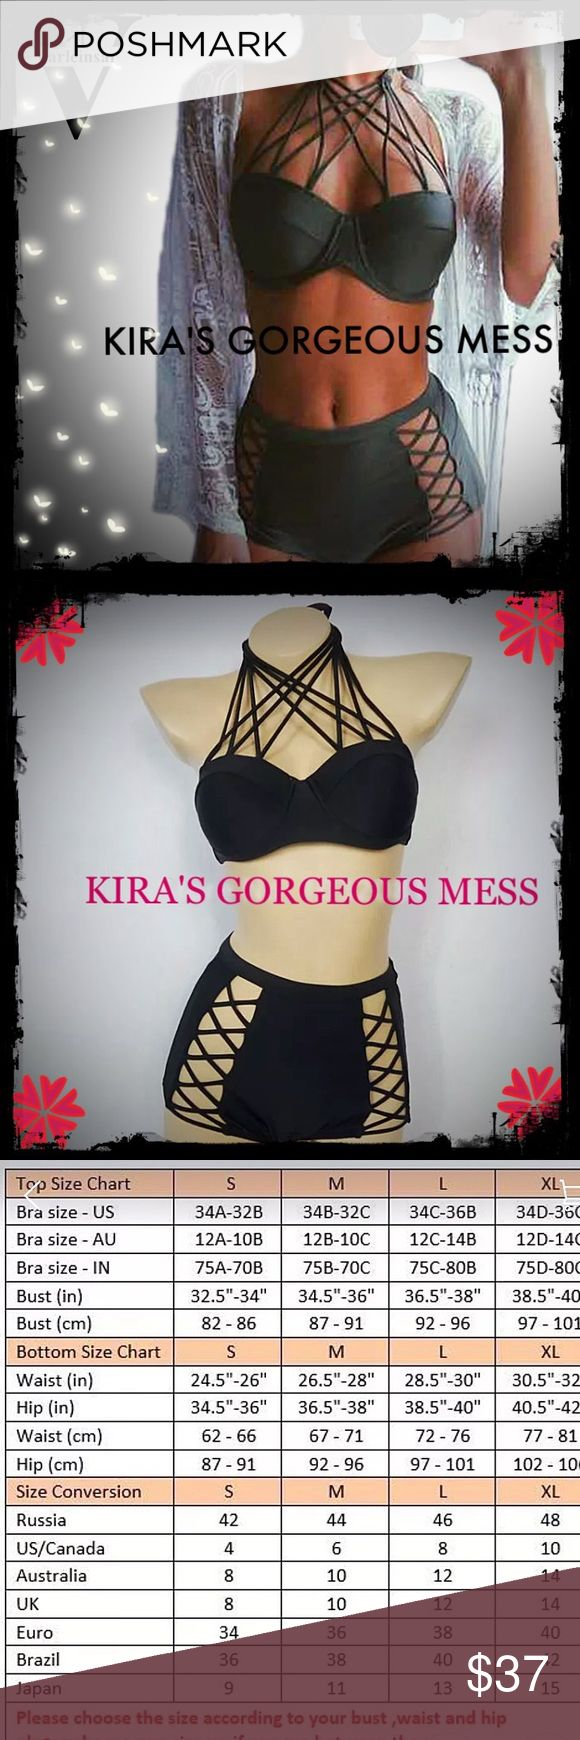 BNWT PUSH UP HIGH WAIST BIKINI PIN UP GIRL STYLE BNWT BRING OUT THAT RETRO SEXY PIN UO GIRL STYLE!!!!! PLEASE PREORDER AVAILABLE IN OLIVE GREEN OR BLACK Boutique Swim Bikinis